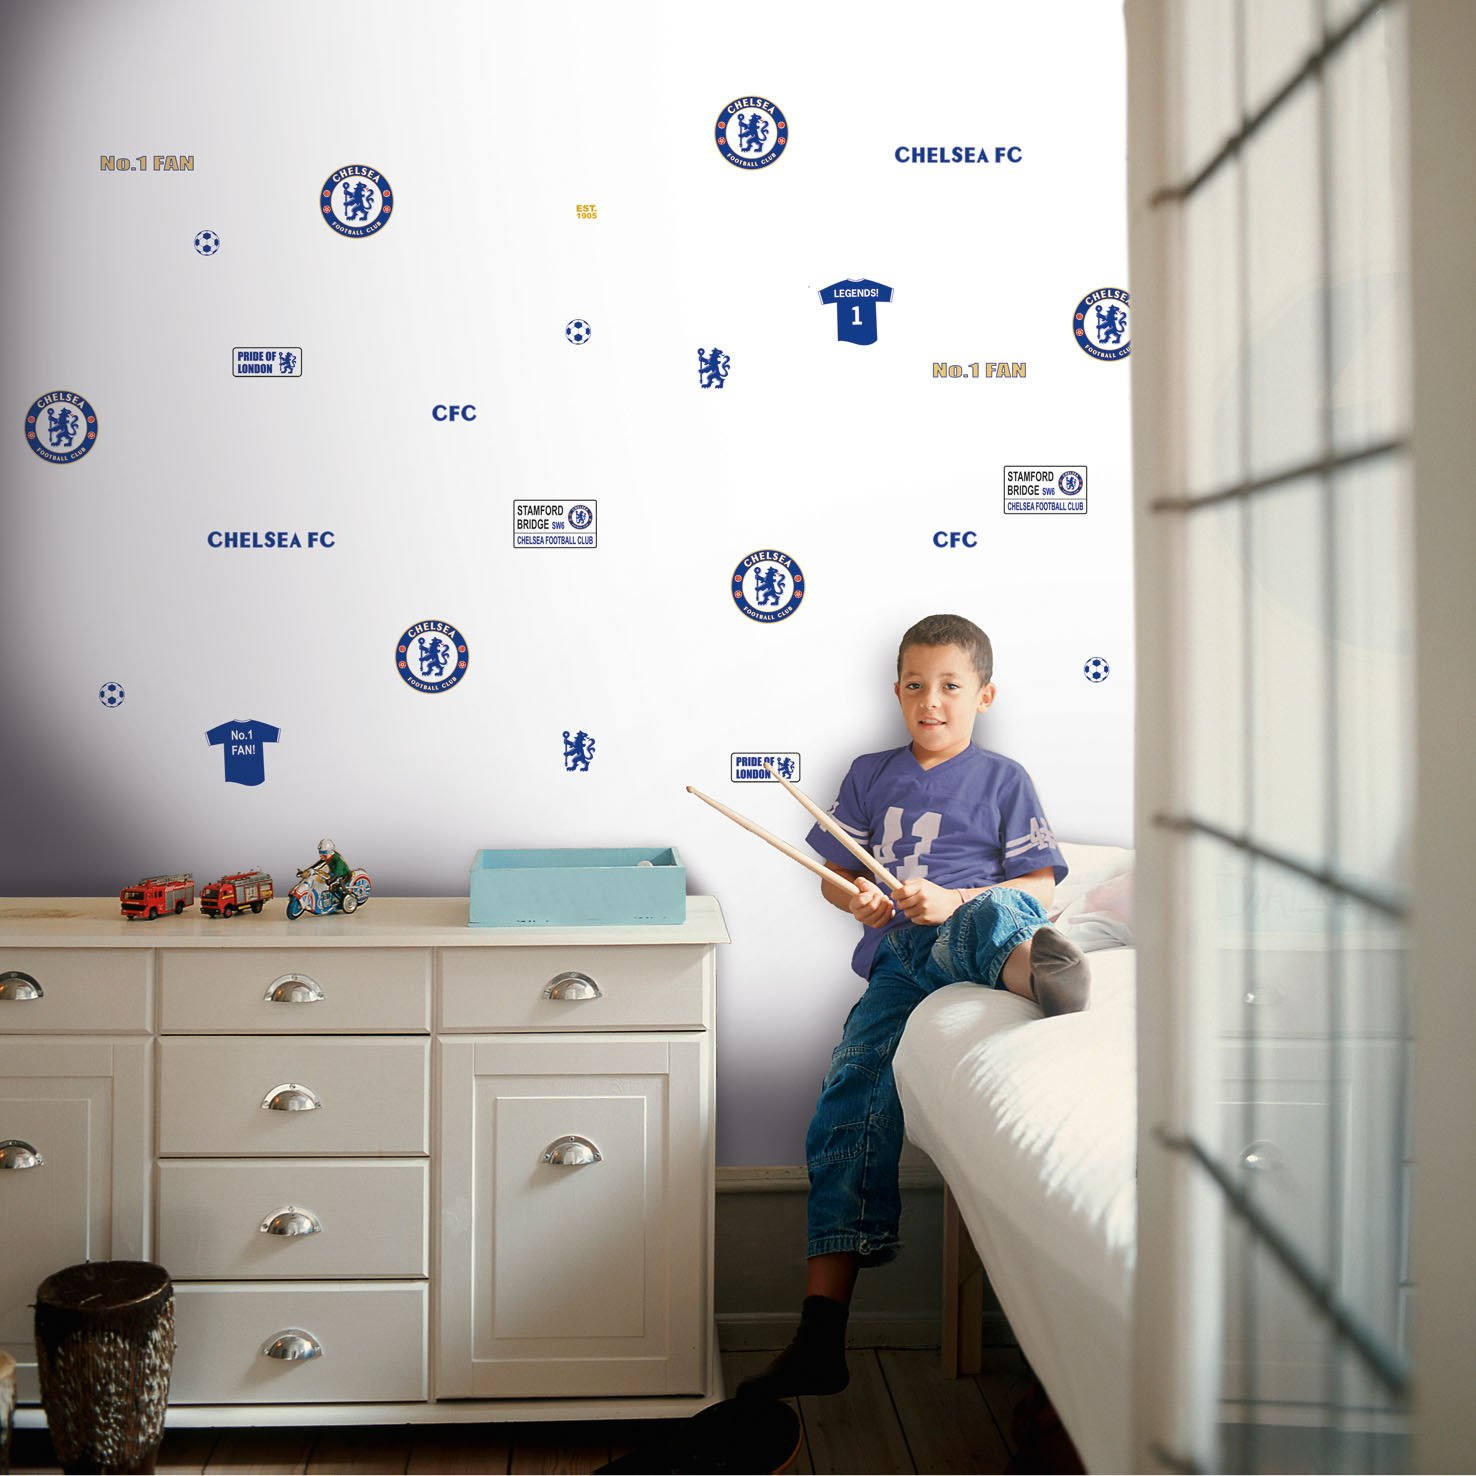 Tottenham wall stickers images home wall decoration ideas chelsea wall stickers choice image home wall decoration ideas chelsea fc wall sticker blue amazon kitchen amipublicfo Images